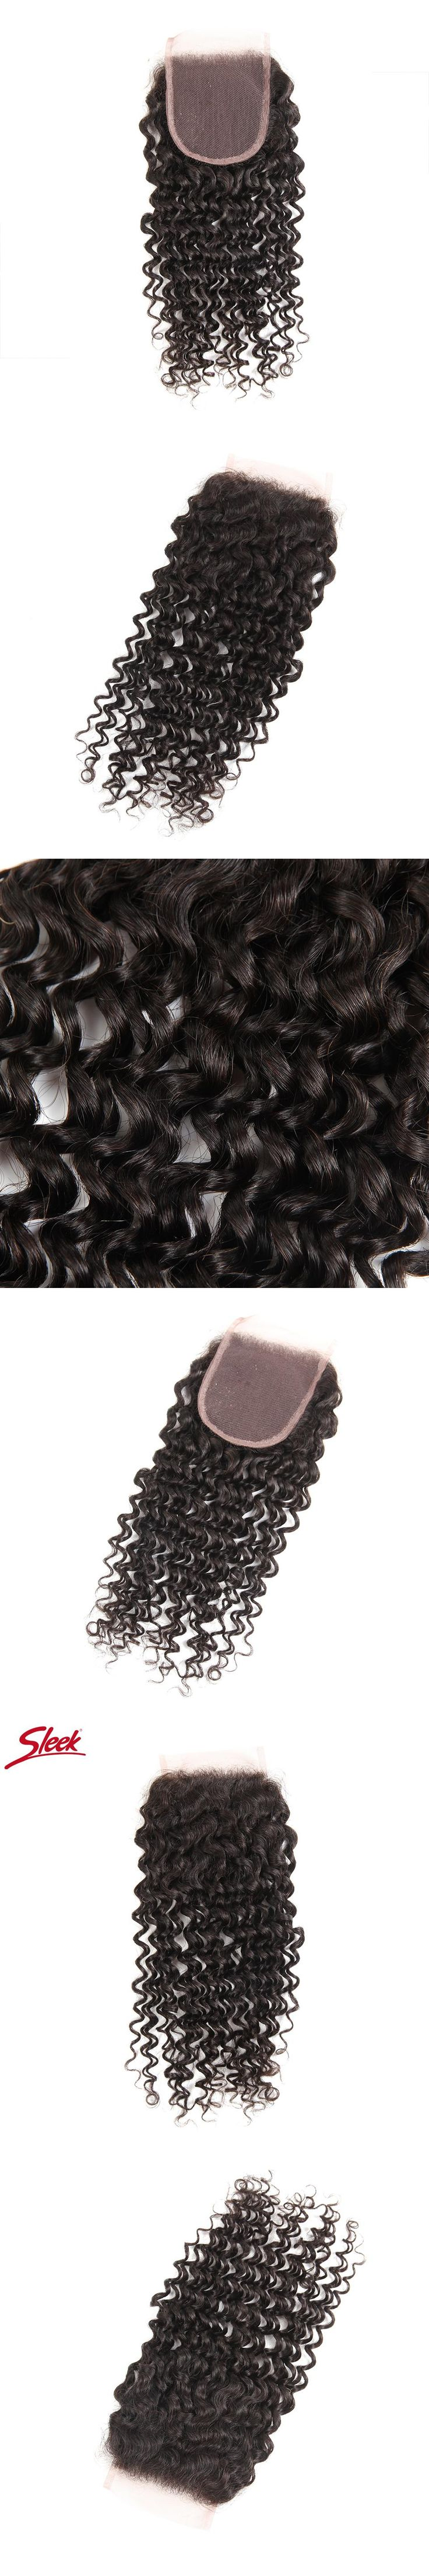 SLEEK HAIR 4*4 Free Part Closure Brazilian Curly Hair Weave 8-18 Inches Remy Hair 130% Density Swiss Lace Closure